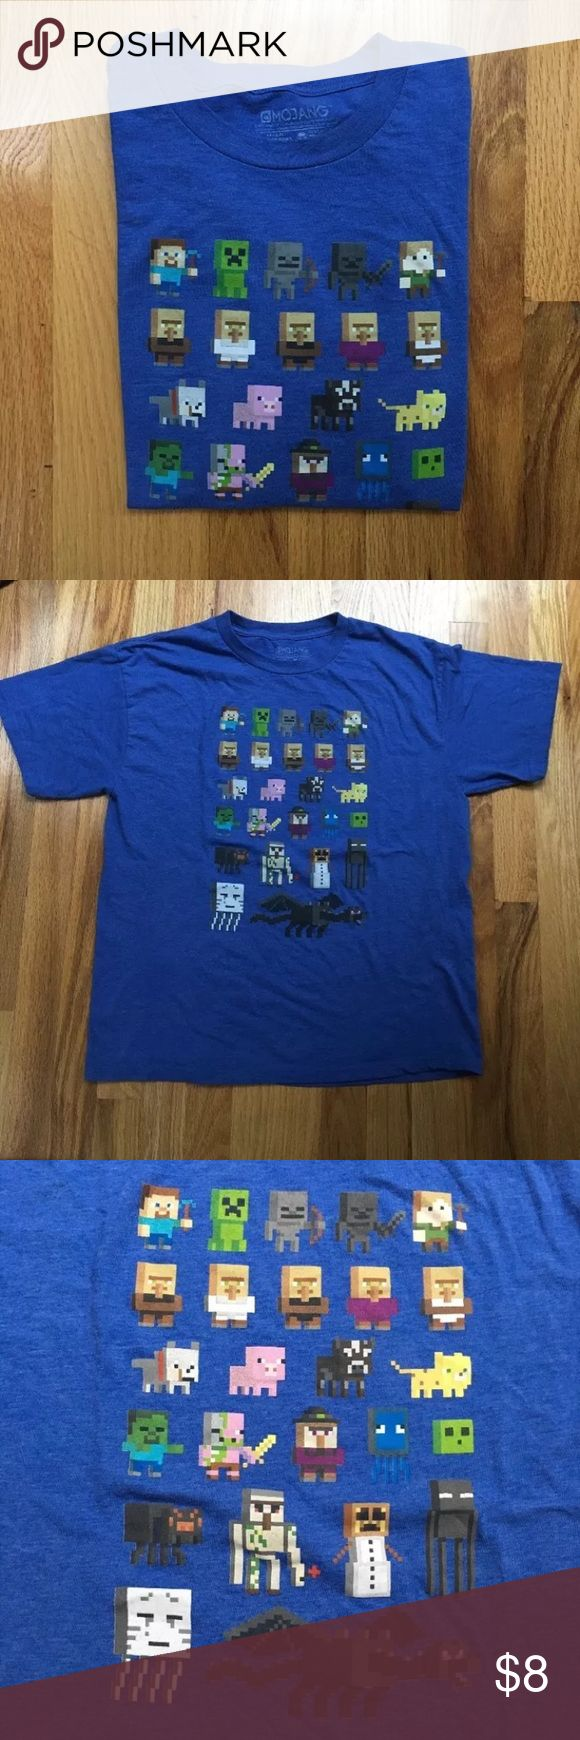 "Mojang Minecraft Boy's Short Sleeve Shirt Mojang Minecraft Boy's Short Sleeve Shirt SZ 2X (18) Blue Cotton JINX.---  Measurements Laying Flat: Approx. Full Chest: Armpit to Armpit: 20"" Length: Shoulder to Hem: 25"" Armpit to Hem: 14.5""   Sleeve Opening: 8"" Sleeve Across: 9"" Sleeve Length: 8.5"" Shirts Tees - Short Sleeve"